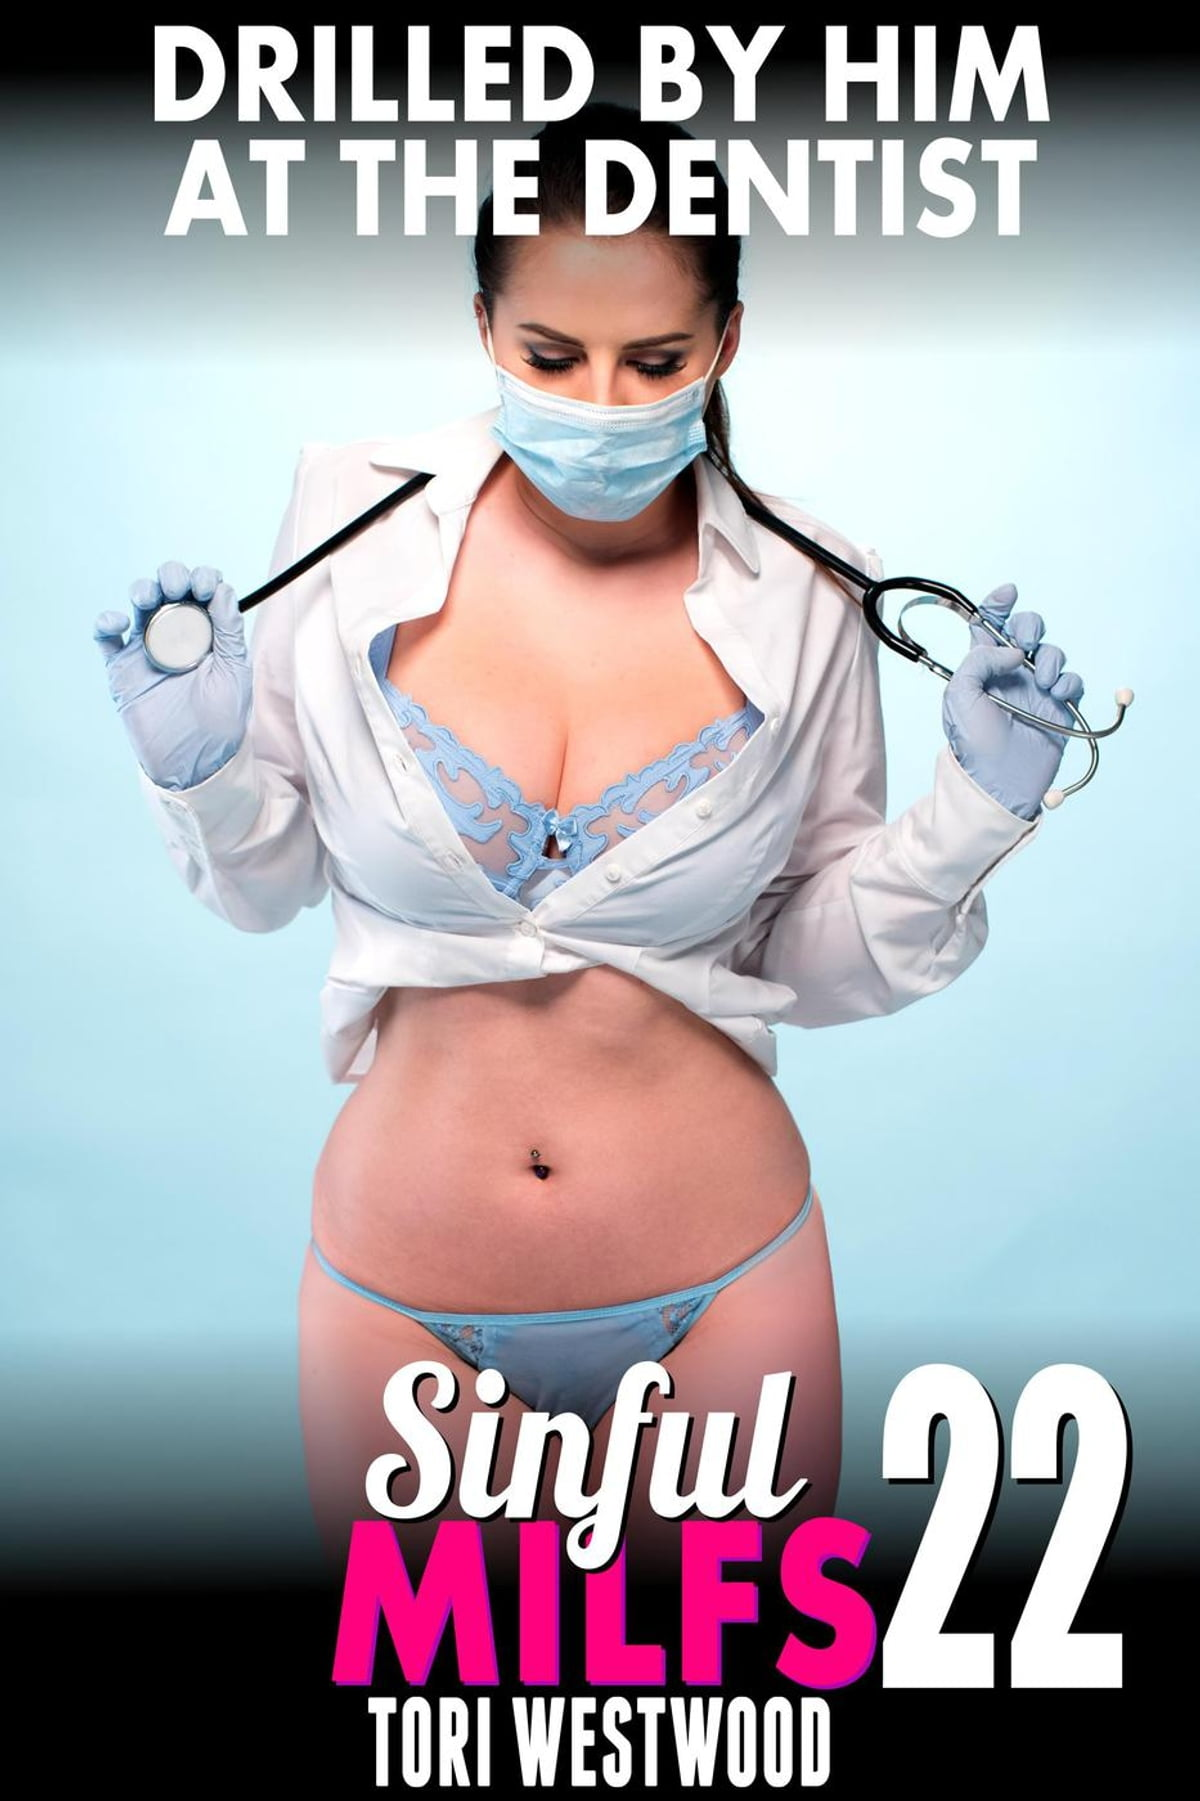 Drilled By Him at the Dentist : Sinful MILFs 22 (MILF Erotica First Time  Erotica Lesbian Erotica Virgin Erotica Threesome Erotica) eBook by Tori  Westwood ...